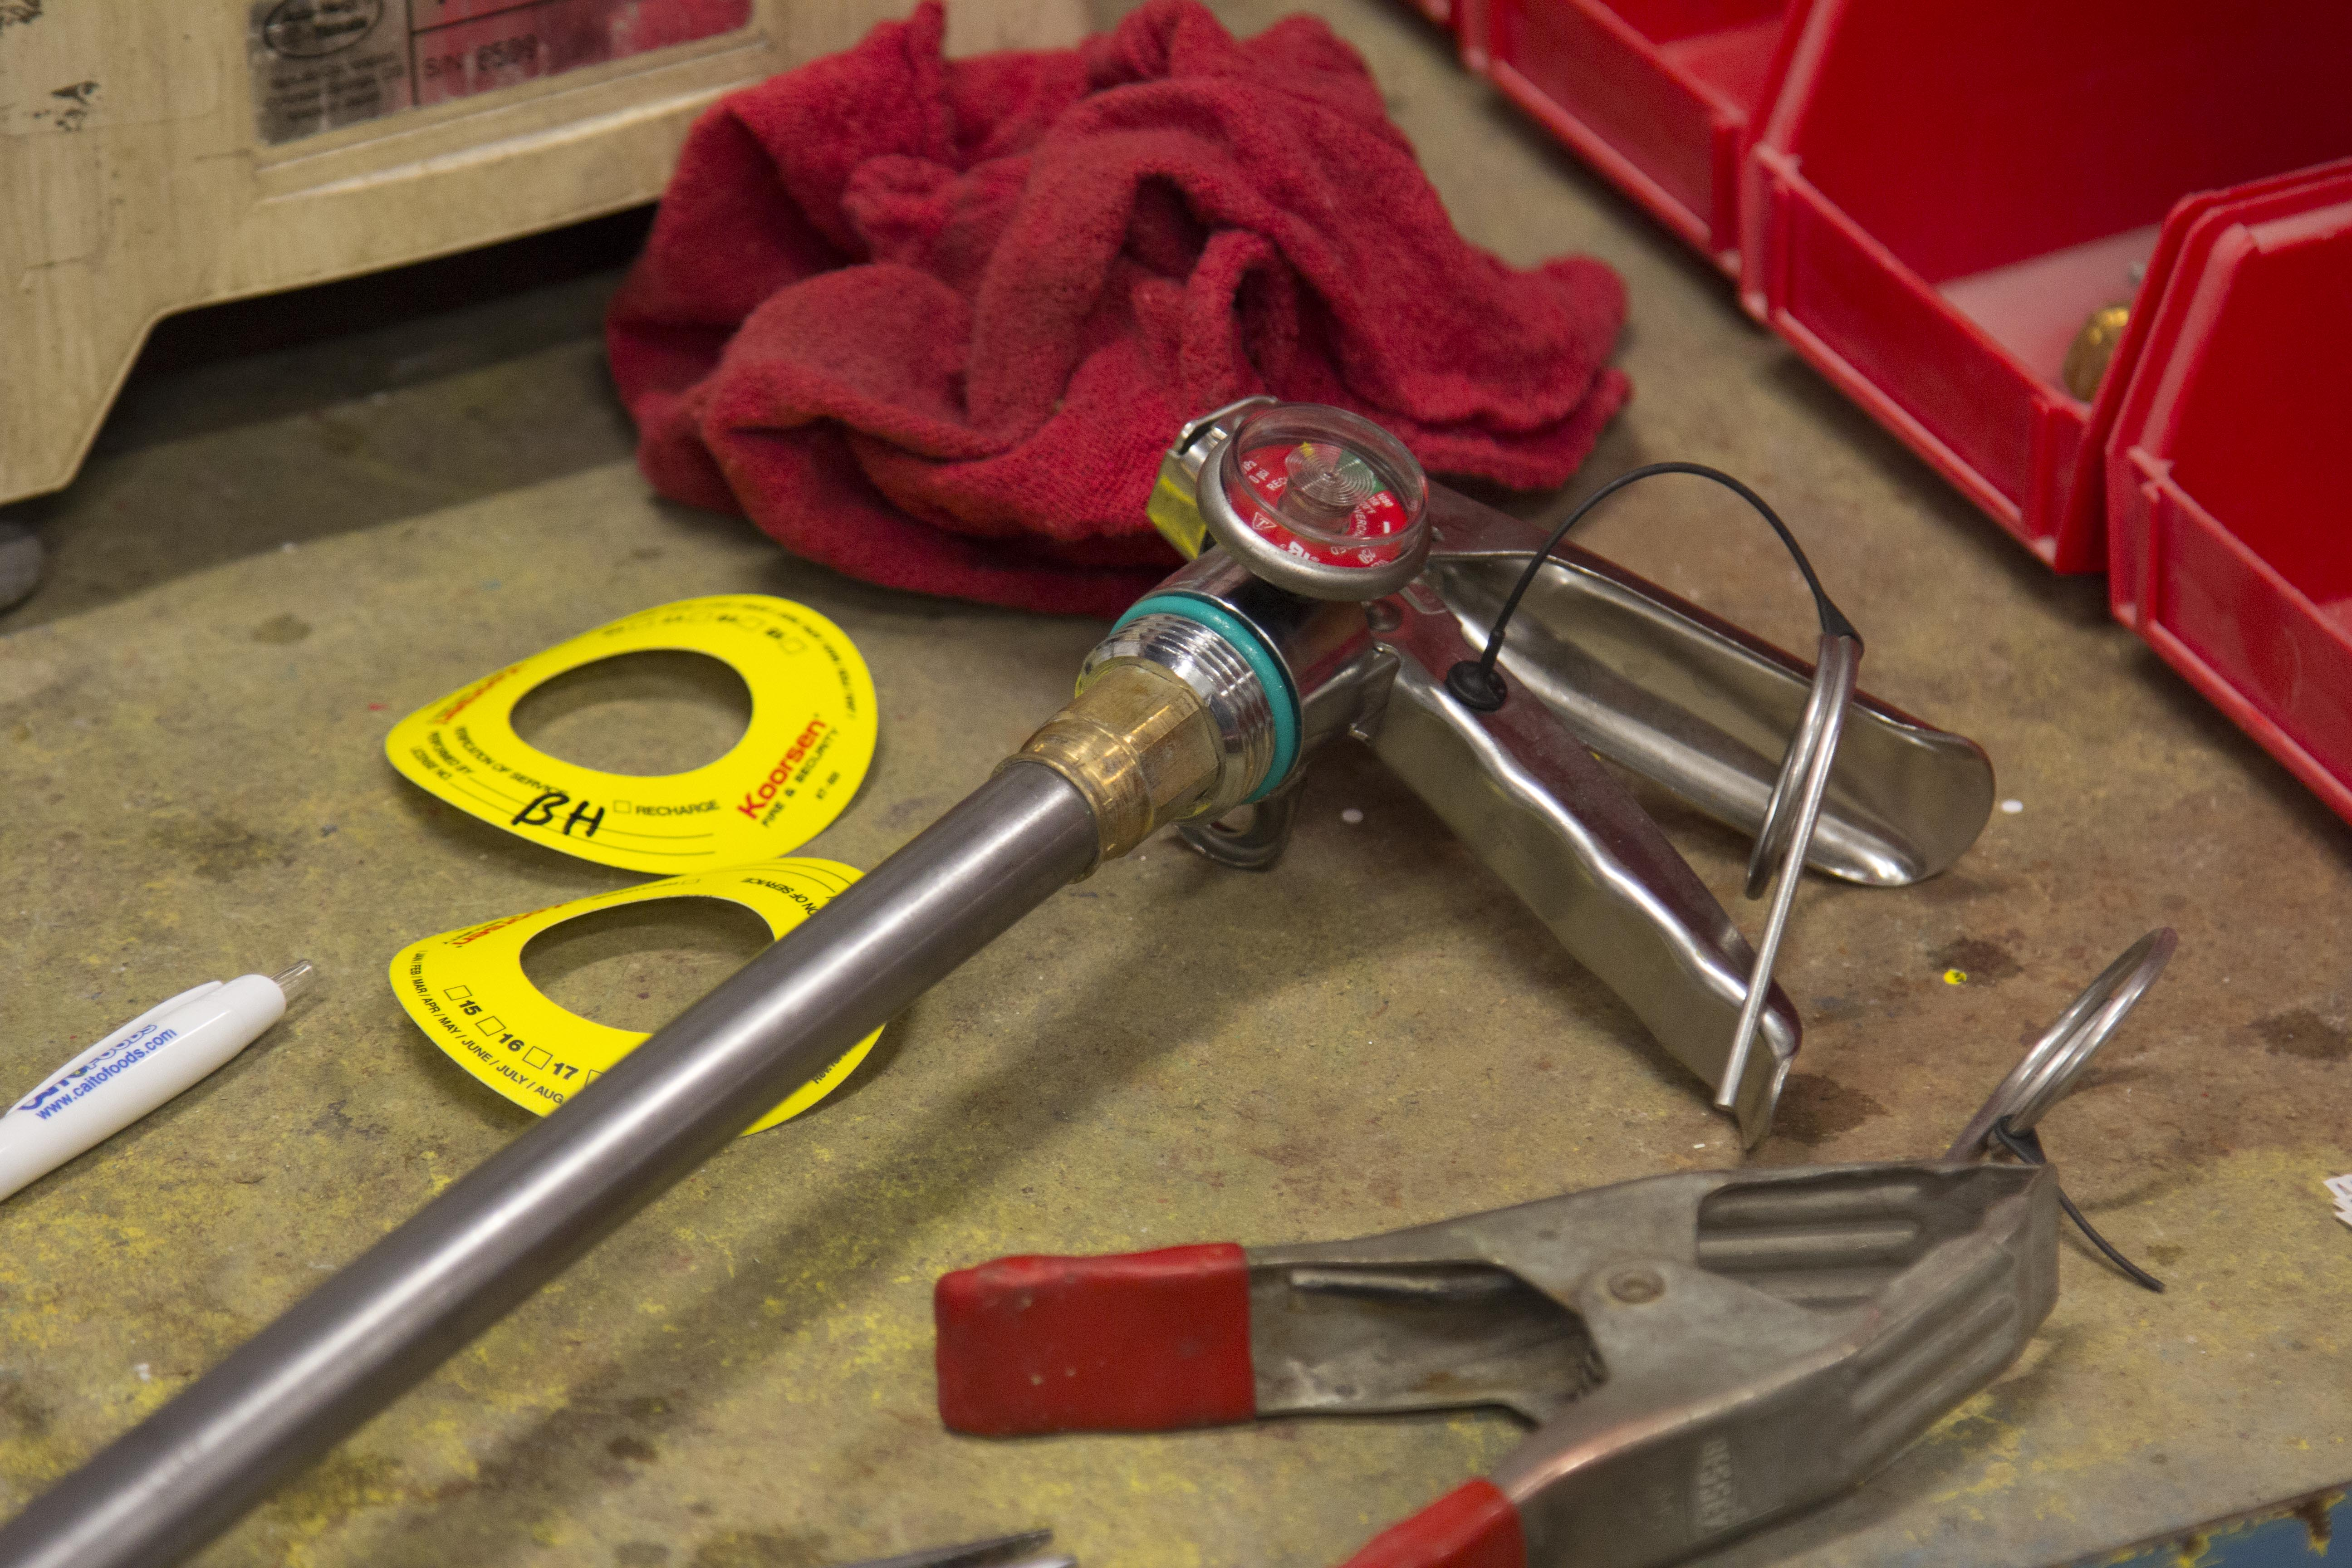 Fire extinguisher valve and o-rings.